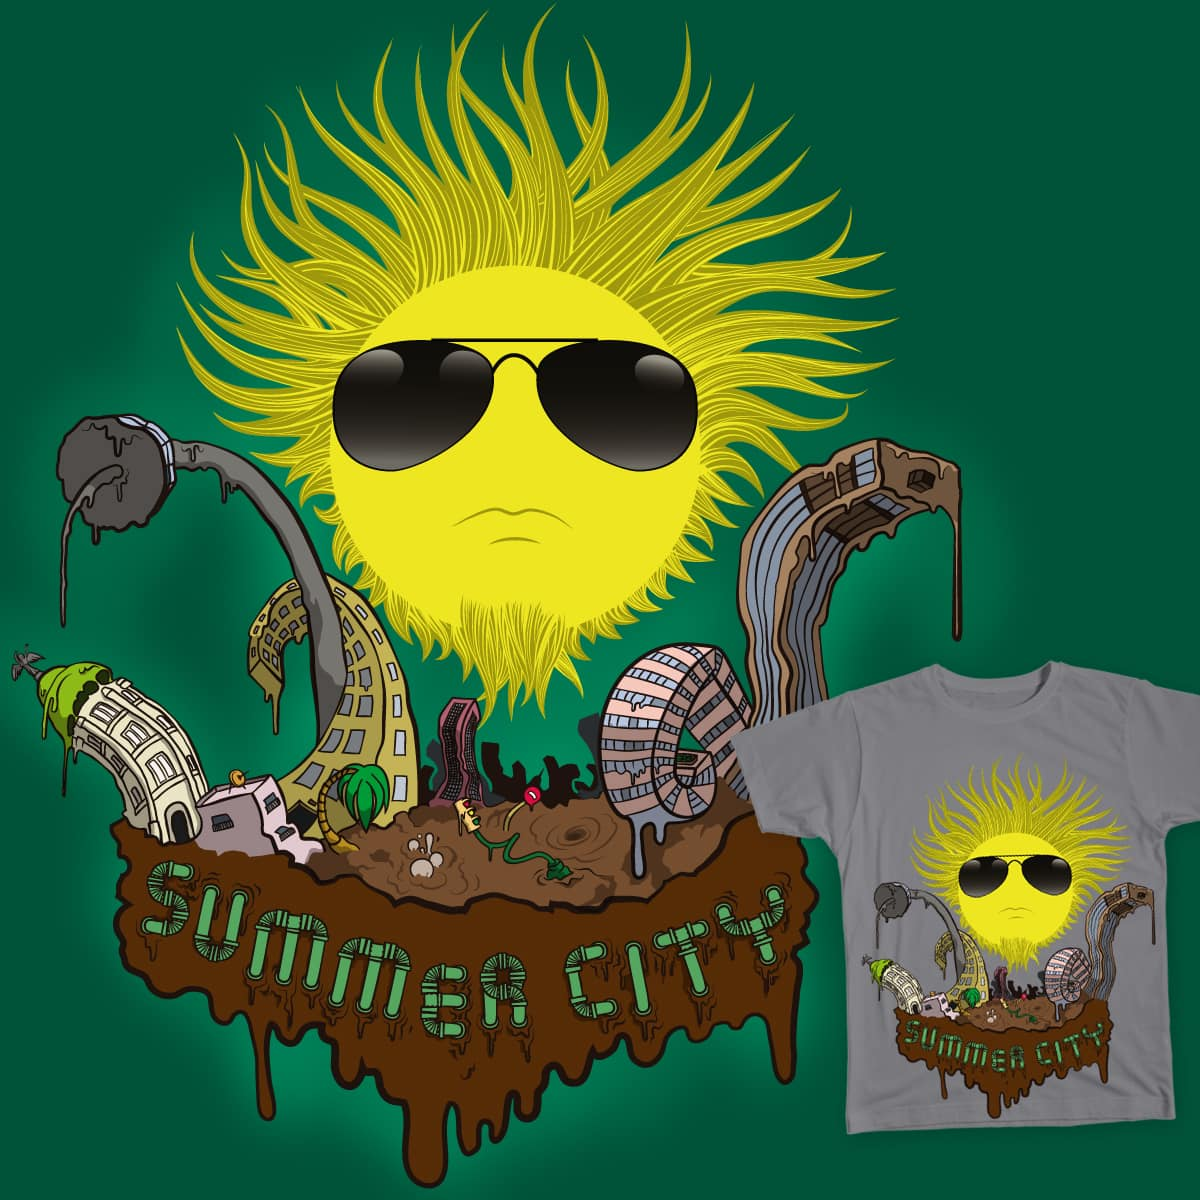 Summer city by Juliusllopis on Threadless